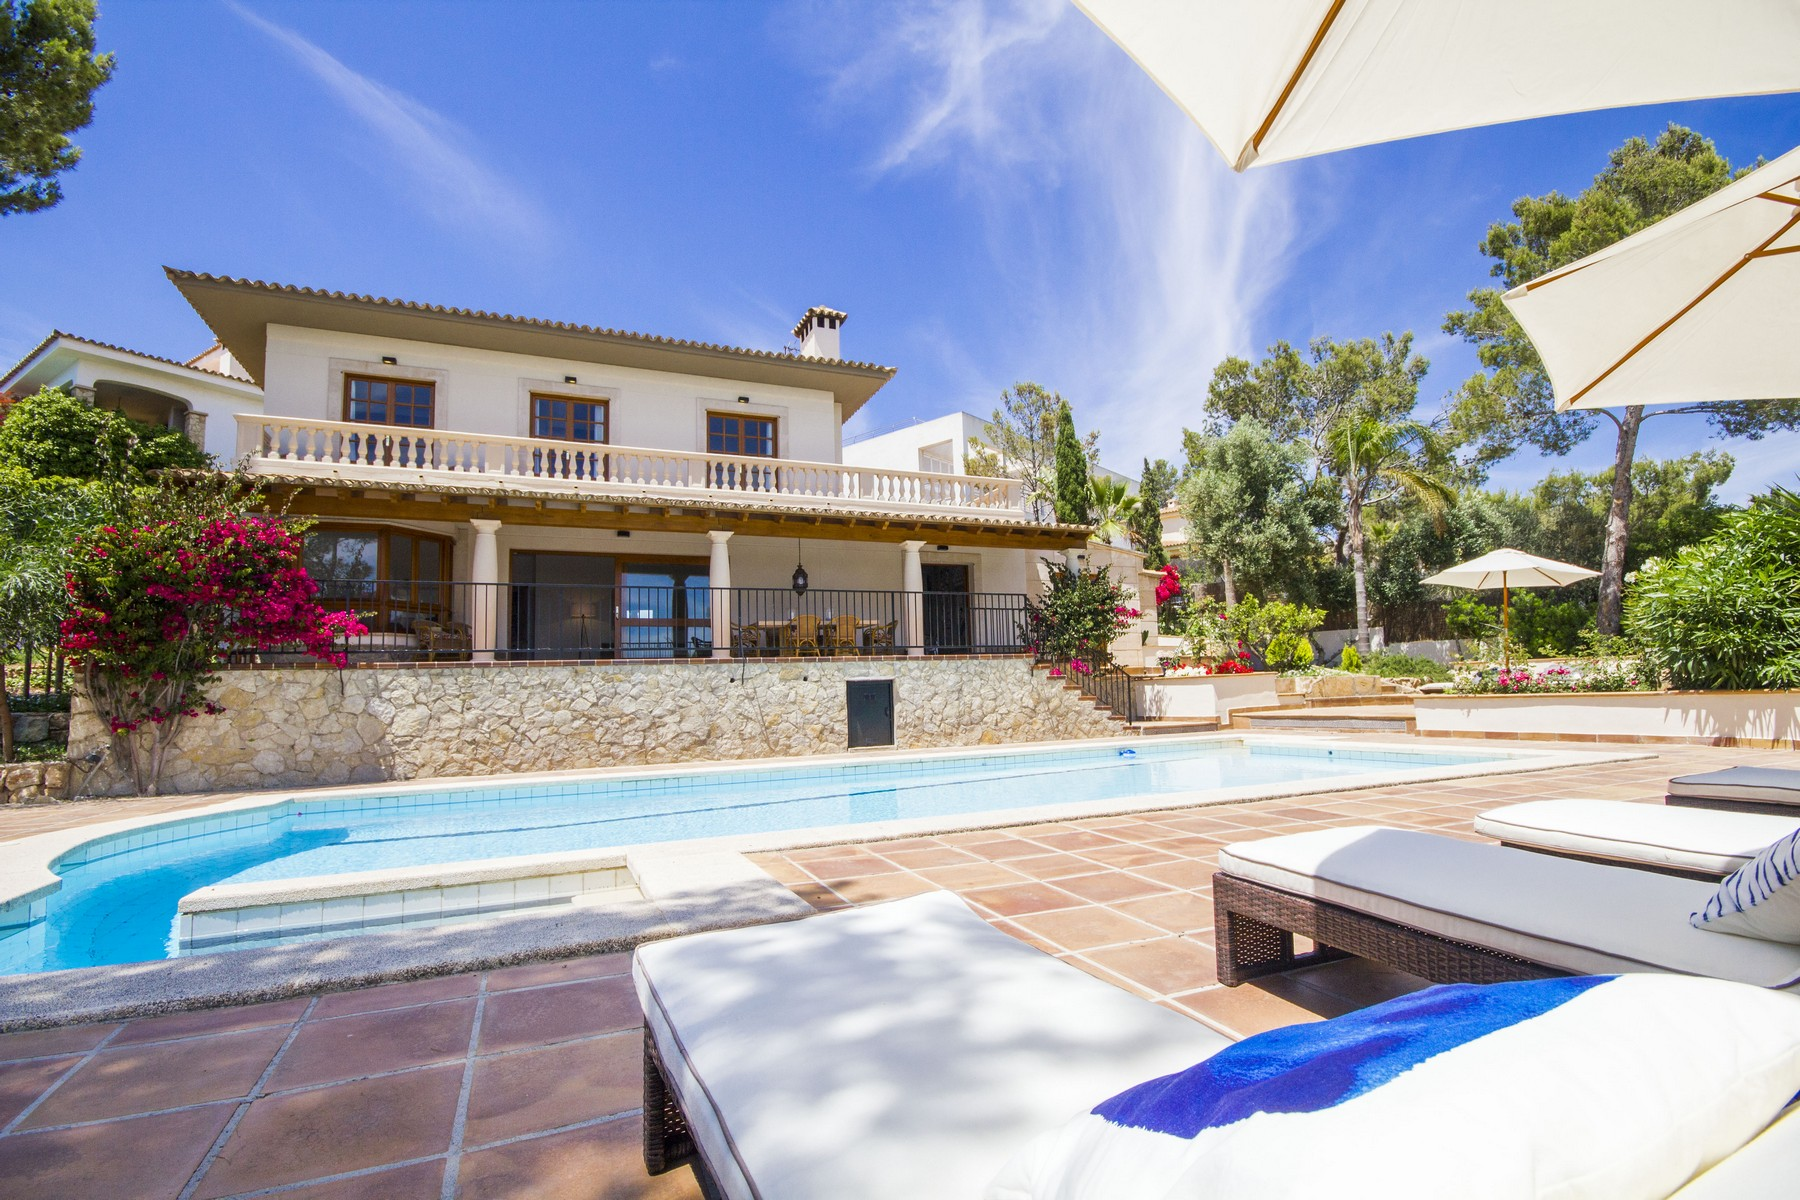 独户住宅 为 出租 在 Comfortable villa in Cas Catala Cas Catala, 马洛卡 07180 西班牙